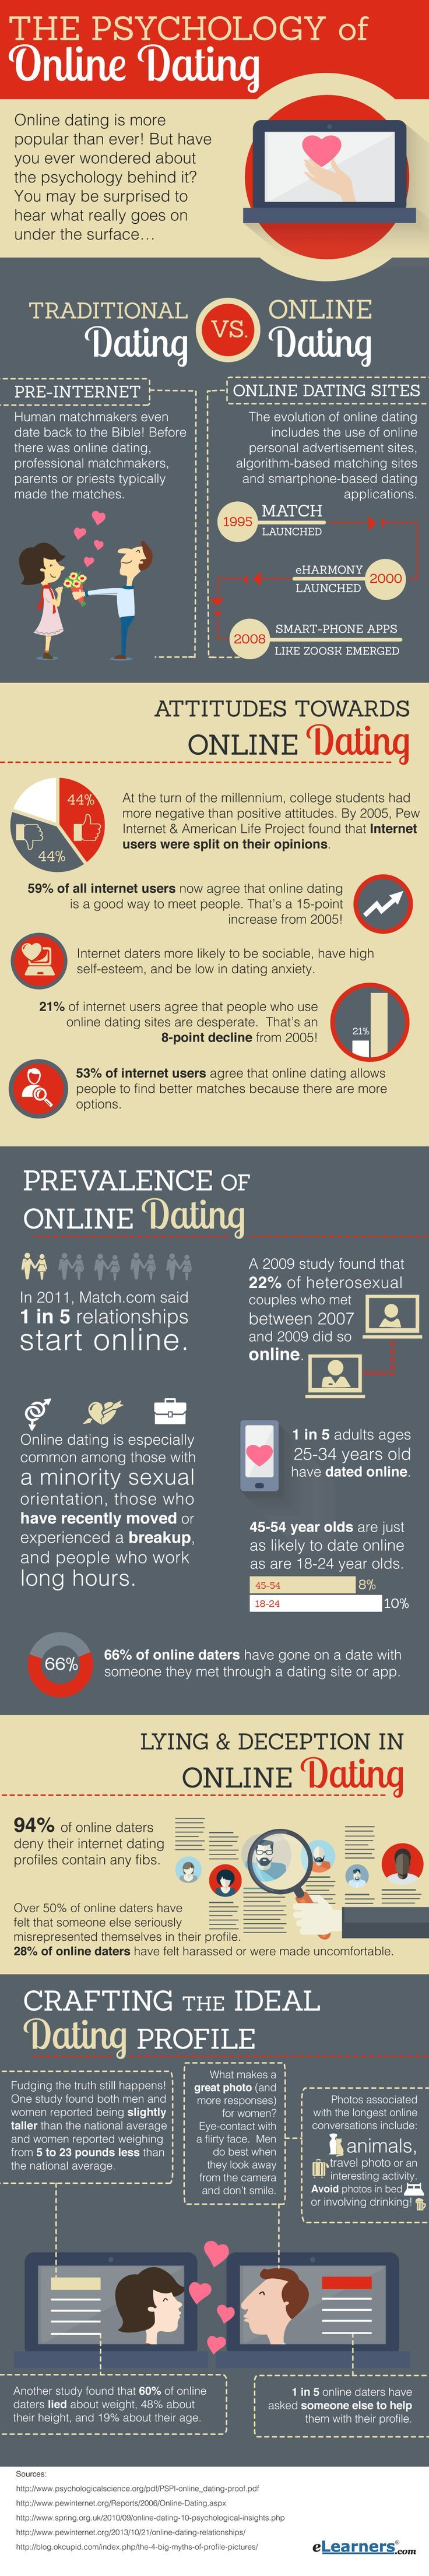 11 Tips For Safe Online Dating Straight From An Expert